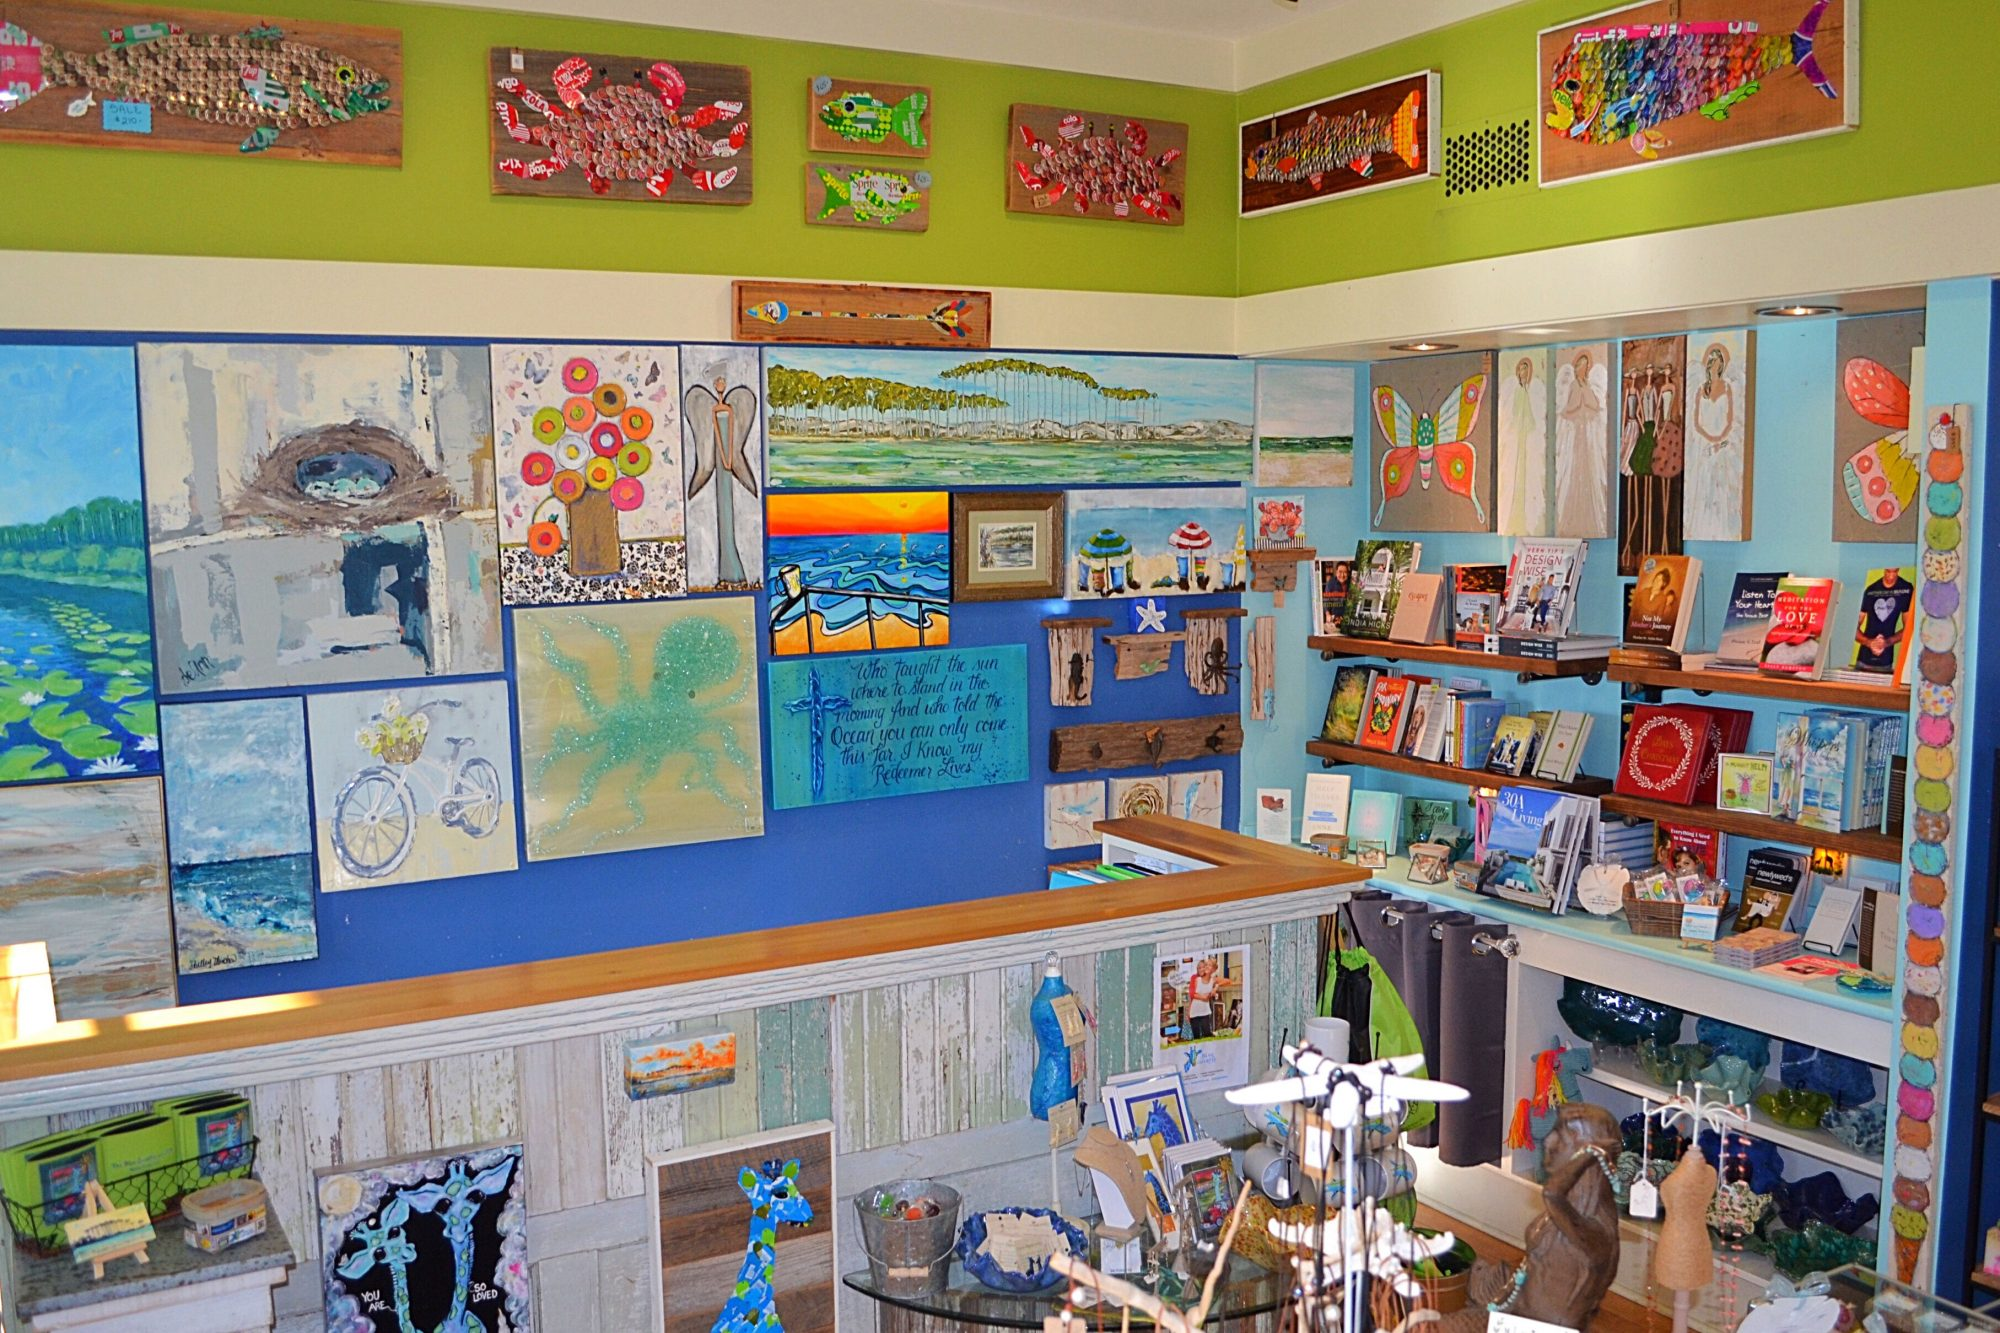 Run by a mother-daughter duo, this colorful boutique offers an assortment of coast-inspired goods, gifts, and artwork, with a cheerful, upbeat vibe that meshes perfectly with 30A's year-round cheer. If you're the do-it-yourself type, stop by for...